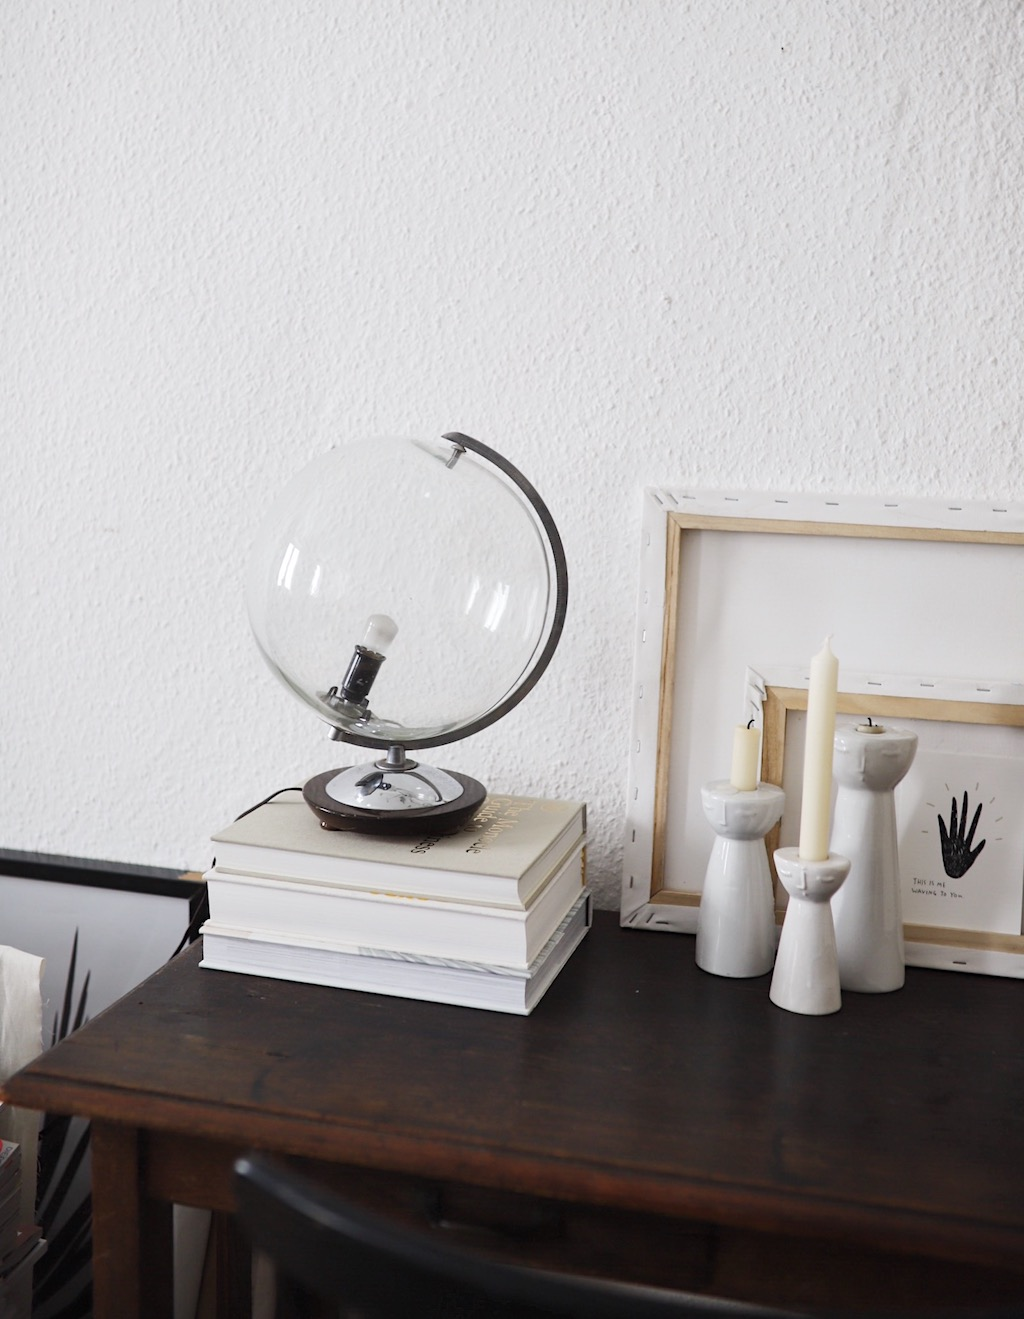 doitbutdoitnow upcycling vintage globus lampe. Black Bedroom Furniture Sets. Home Design Ideas